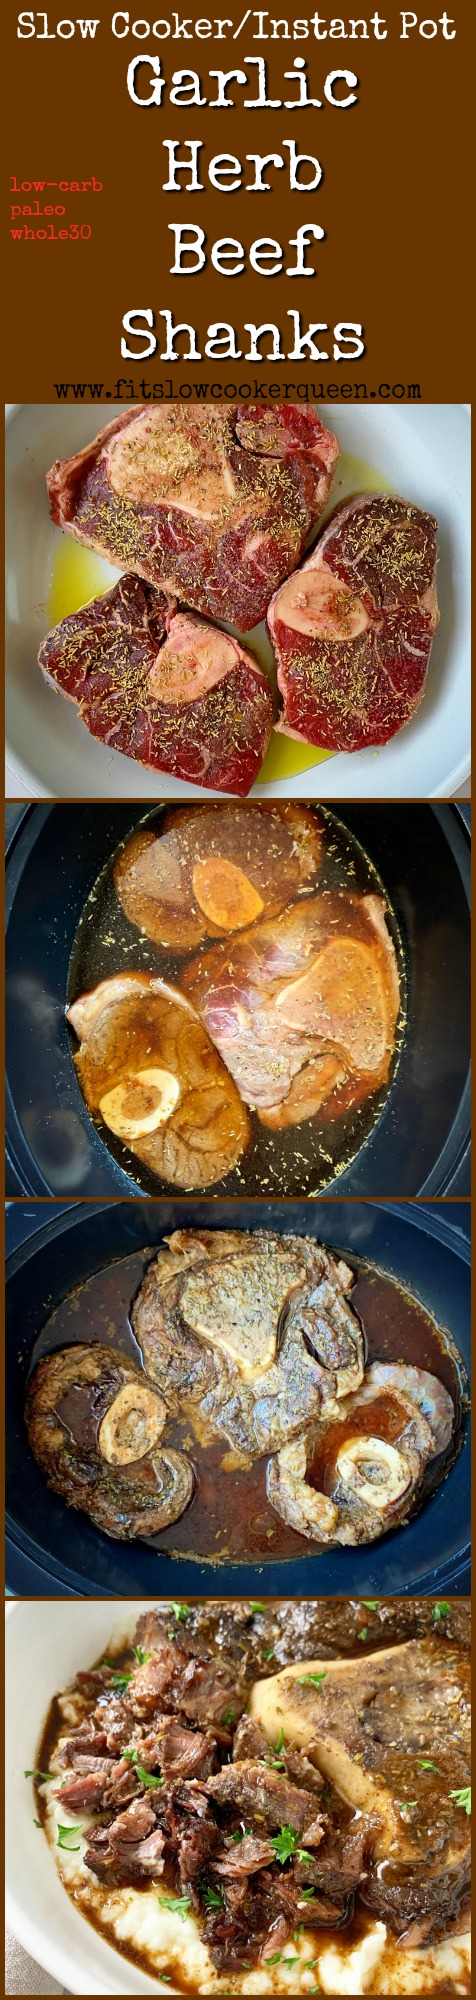 another pinterest pin for {VIDEO} Slow Cooker_Instant Pot Garlic Herb Beef Shanks (Low-Carb, Paleo,Whole30)